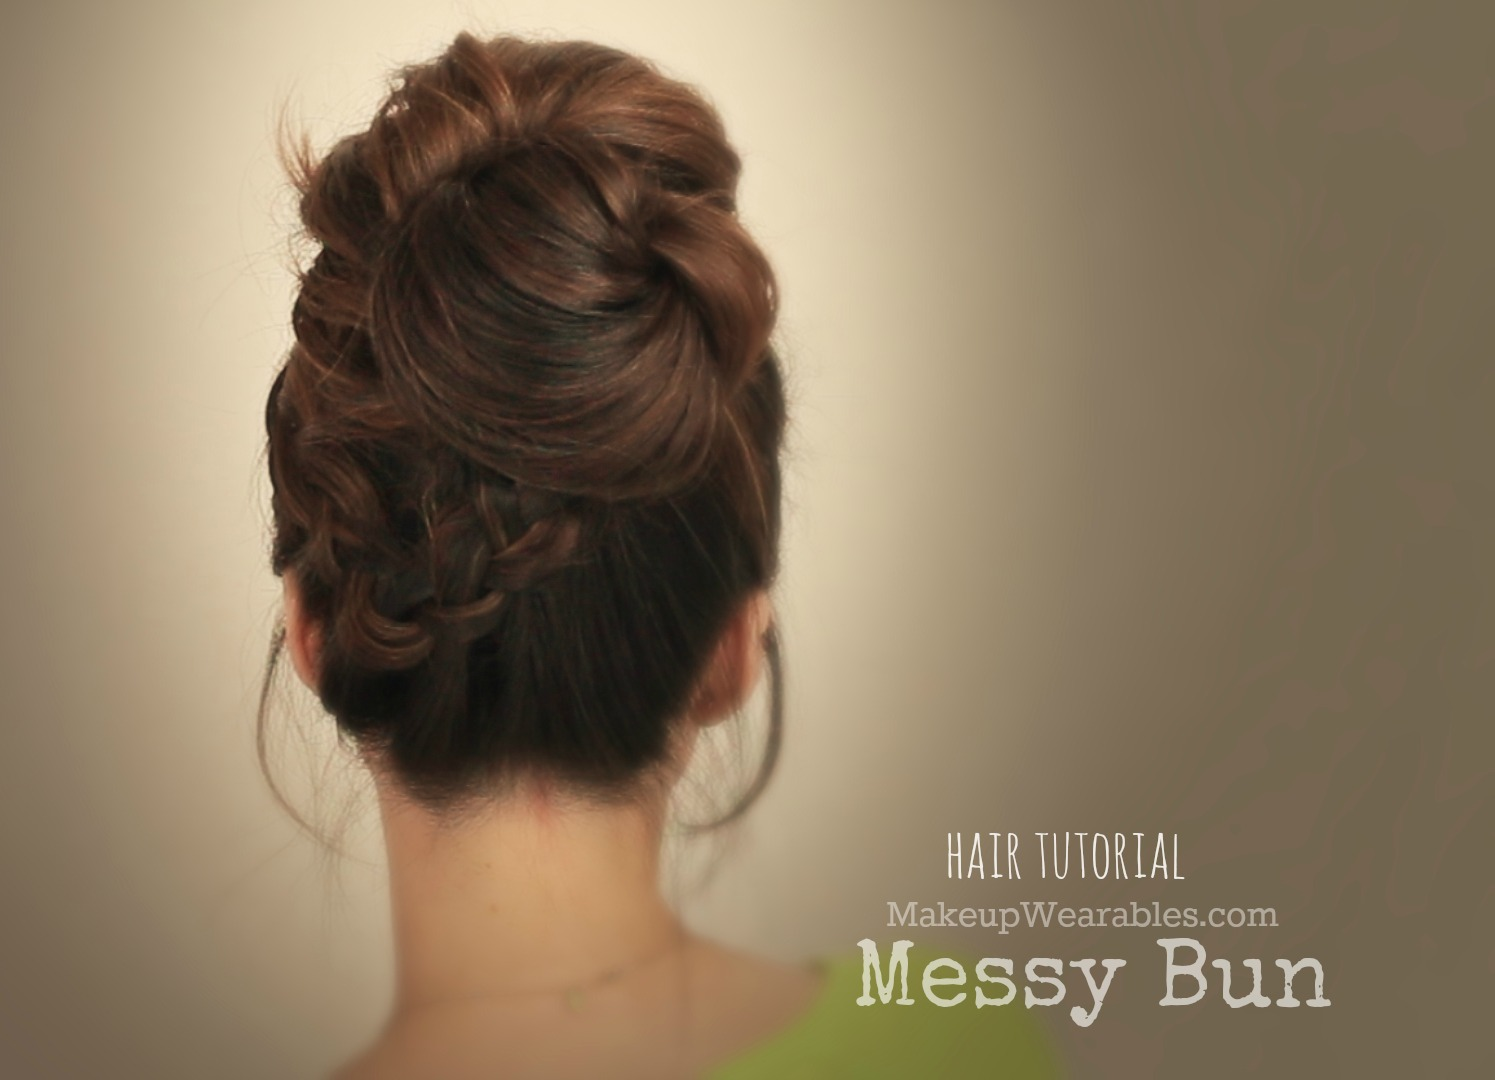 Swell Cute Messy Bun Quick Everyday Updo Hairstyles Hair Tutorial Videos Short Hairstyles For Black Women Fulllsitofus